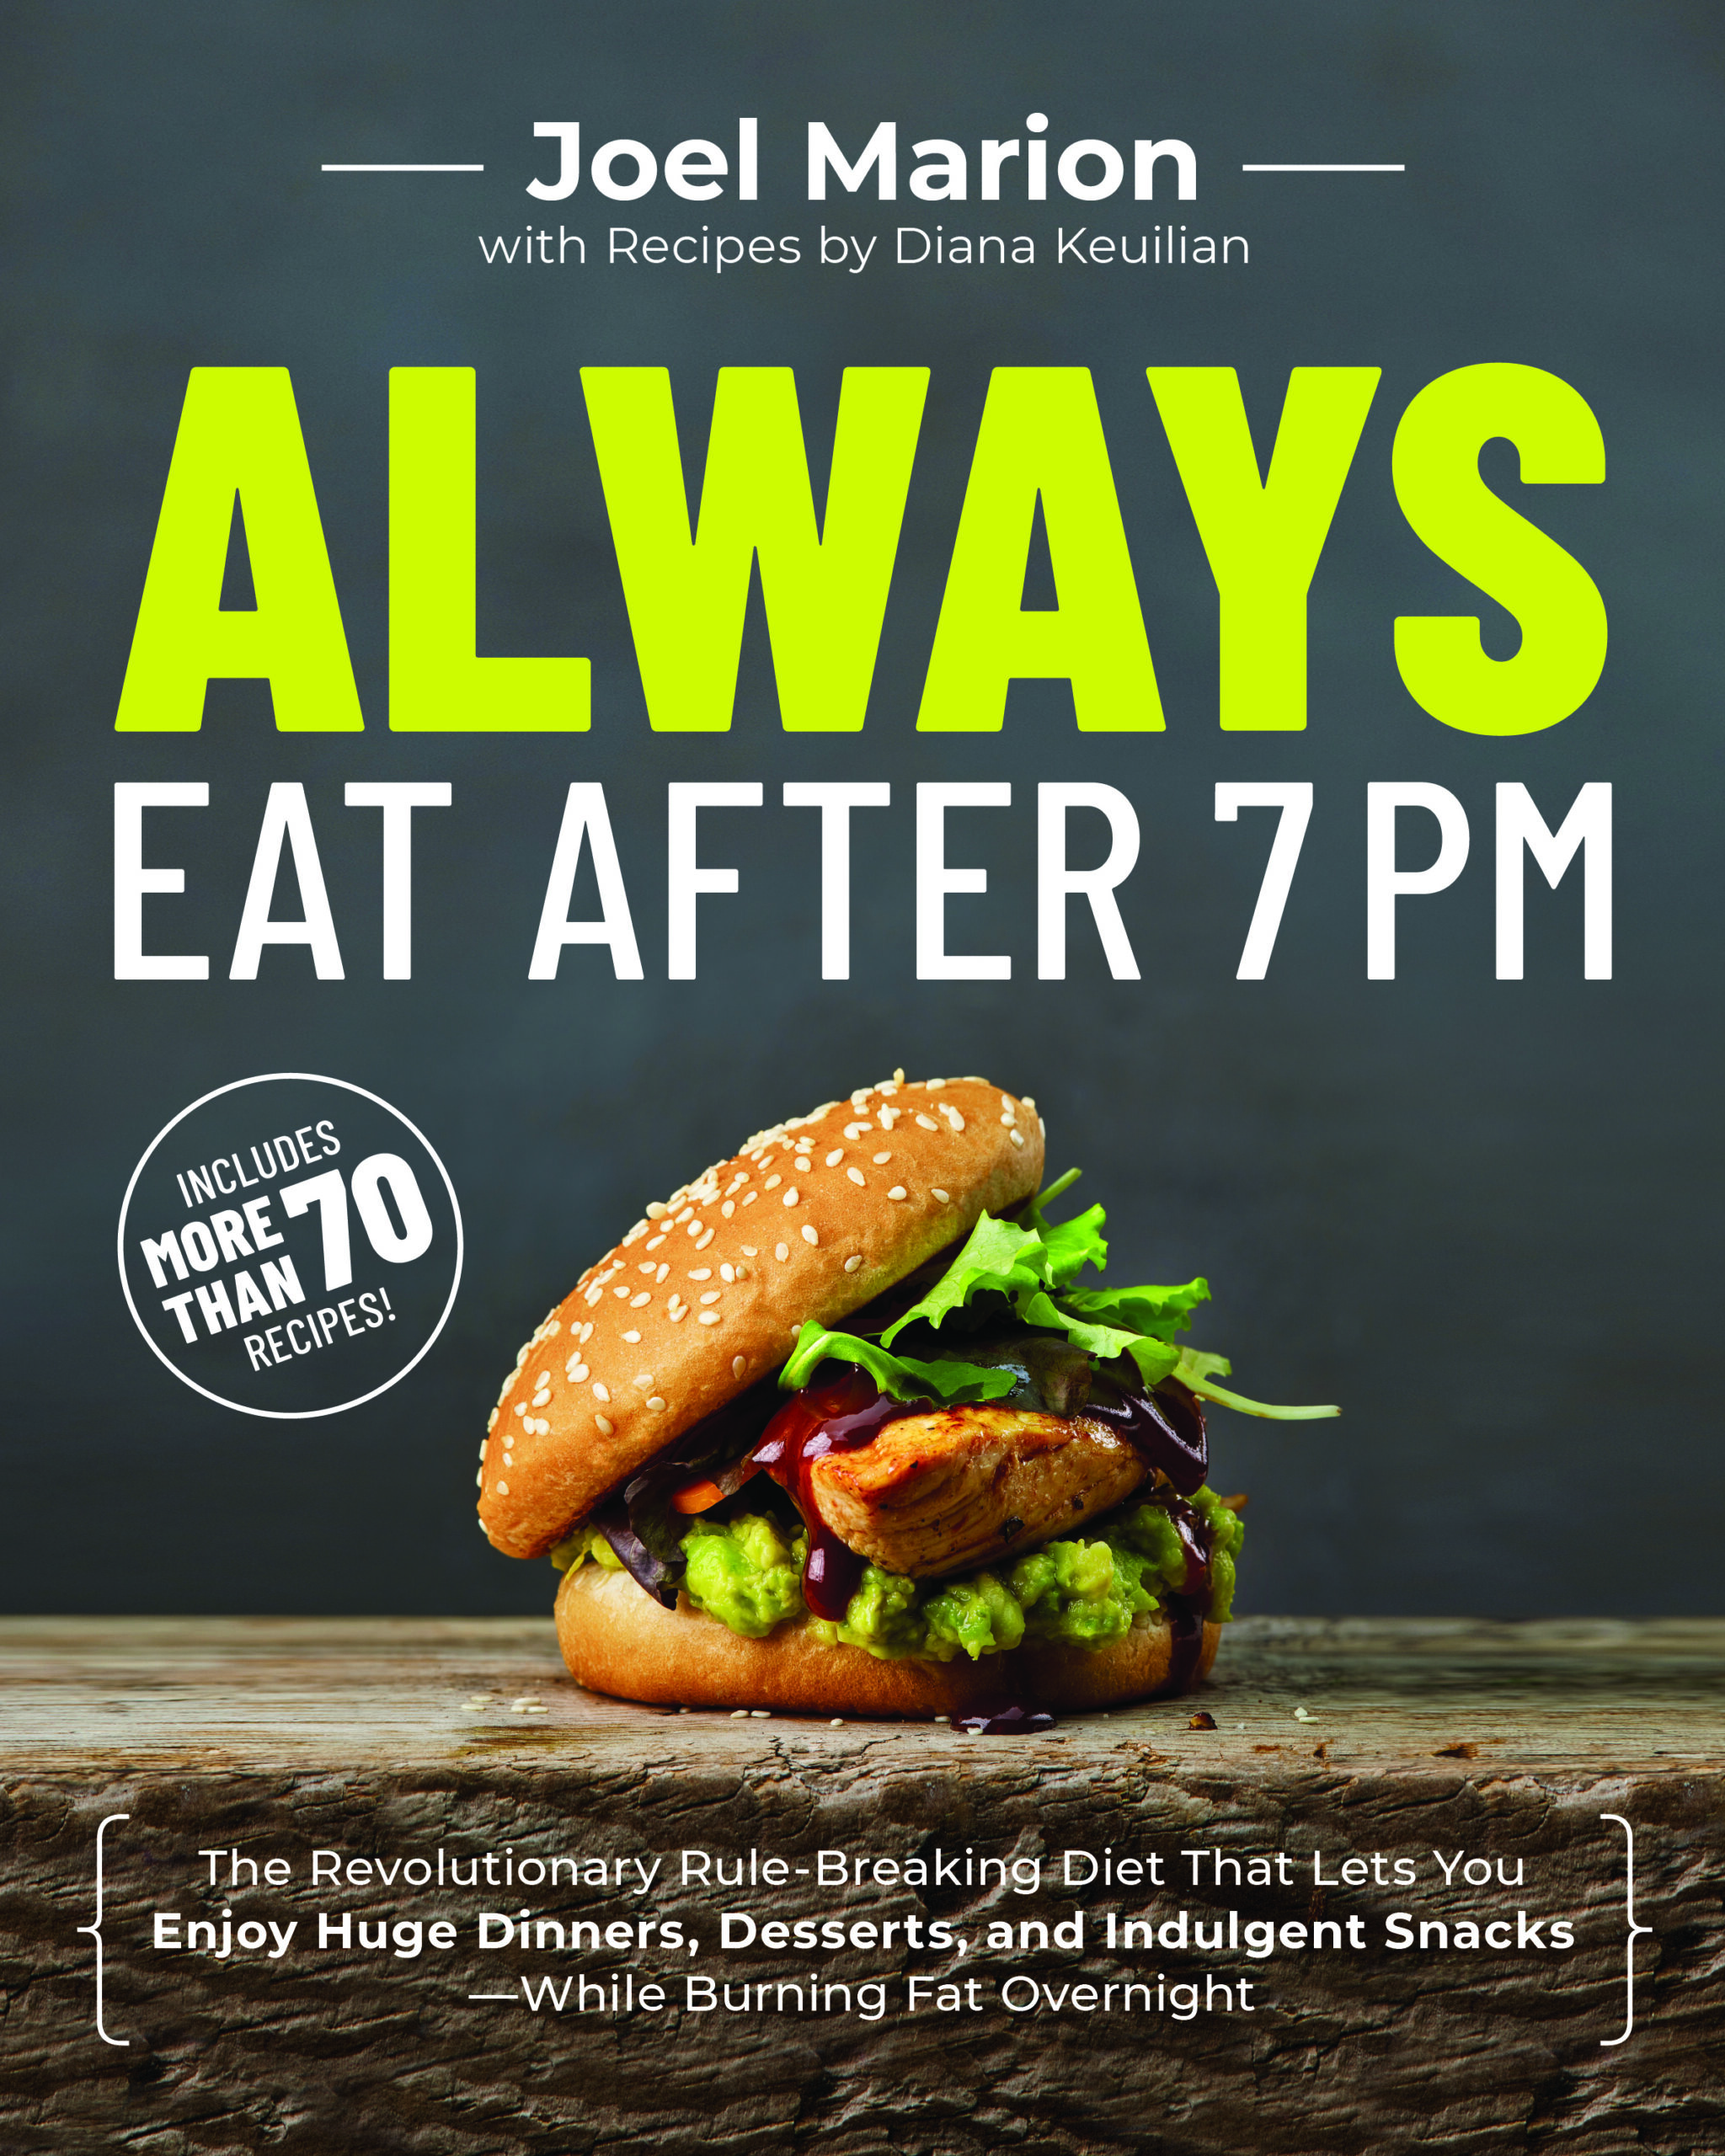 always eat after 7pm, always eat after 7pm book challenge, joel marion, new diet plan, new diets, meal planning, new diets, intermittent fasting